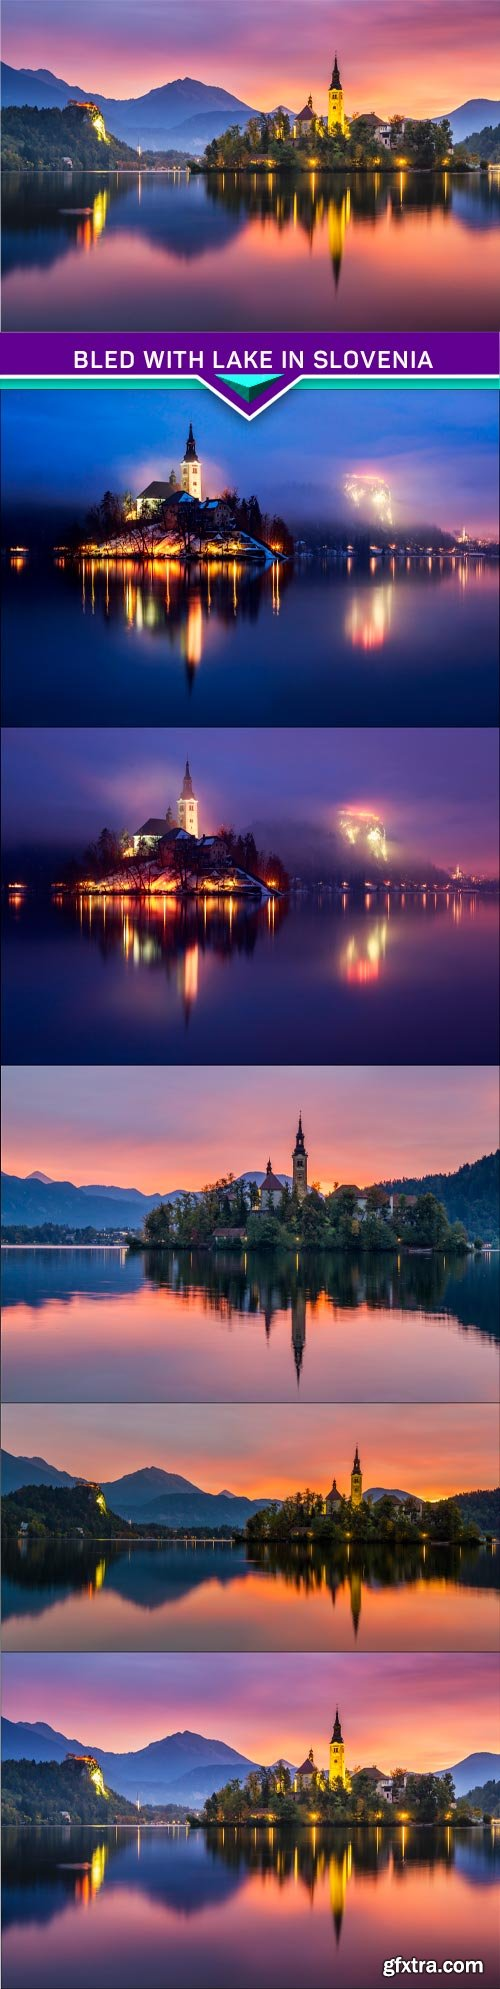 Bled with lake in Slovenia Europe 5x JPEG